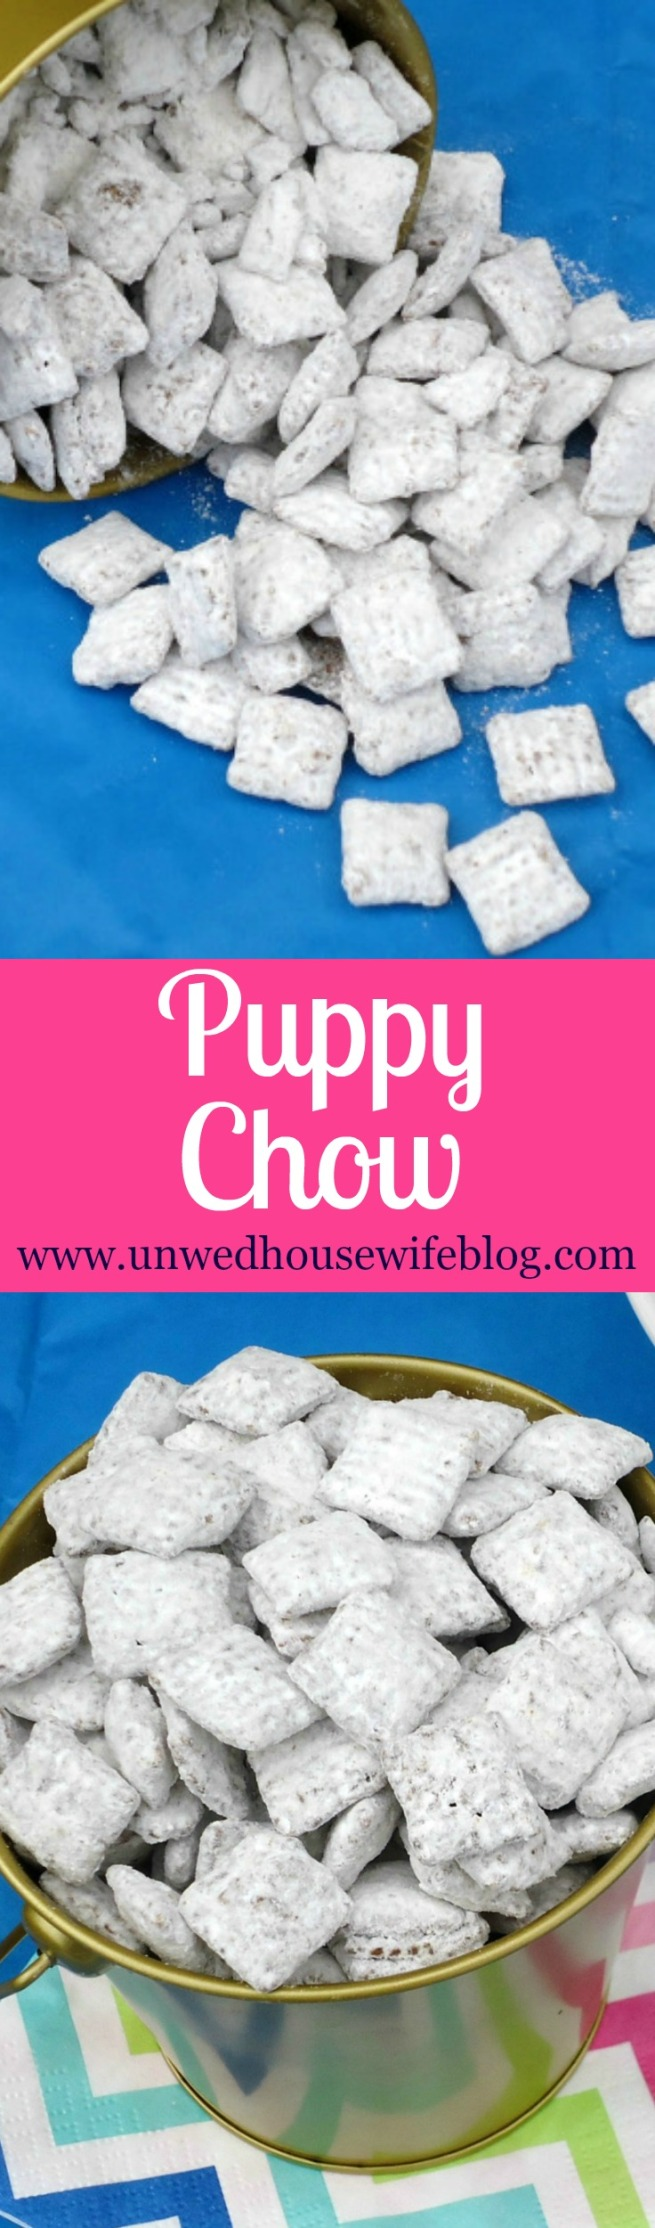 Puppy Chow | Unwed Housewife | Simple, quick, easy dessert recipe that's fun for the whole family!